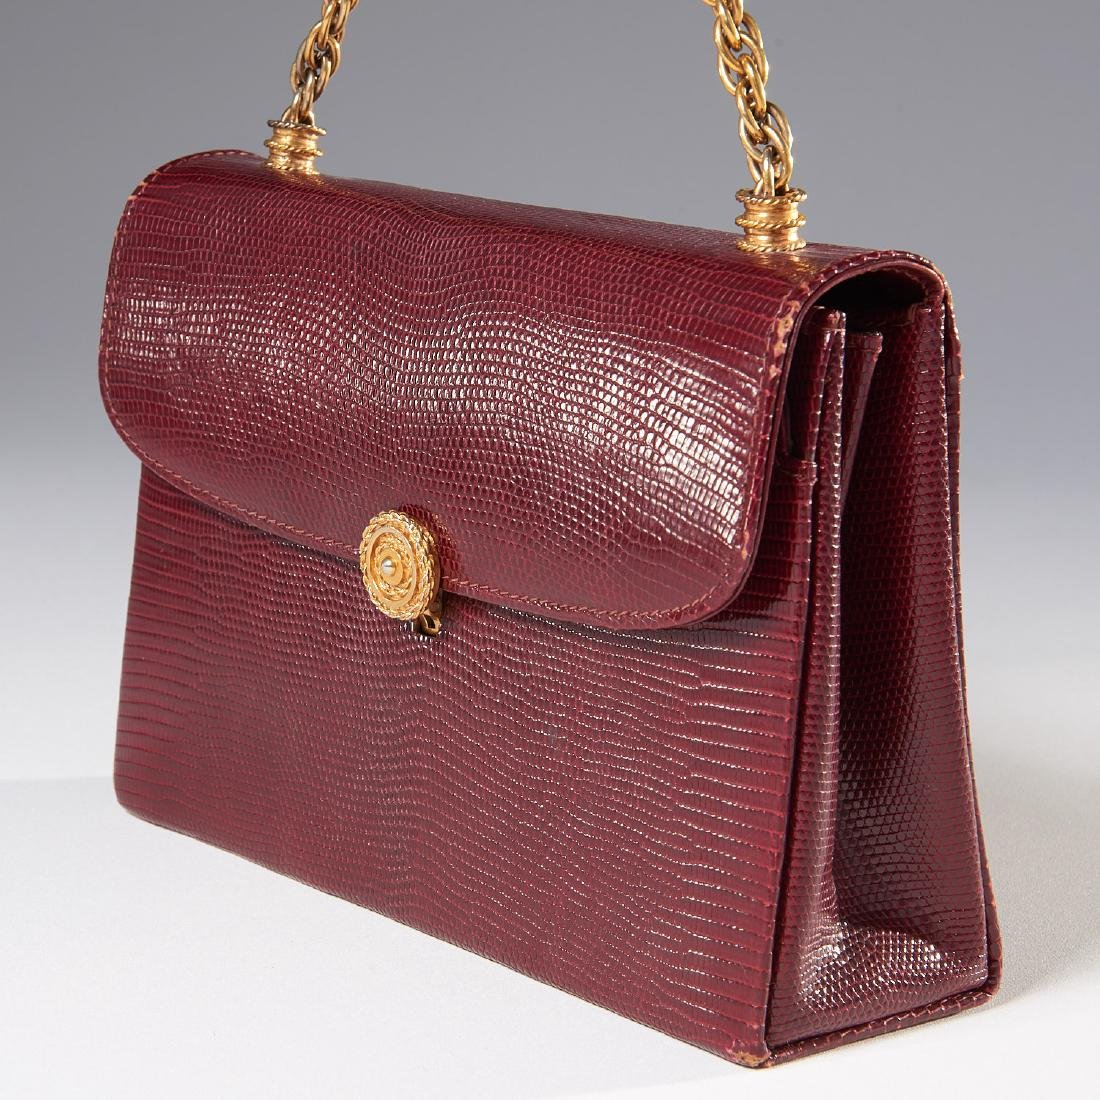 Gucci burgundy lizard handbag